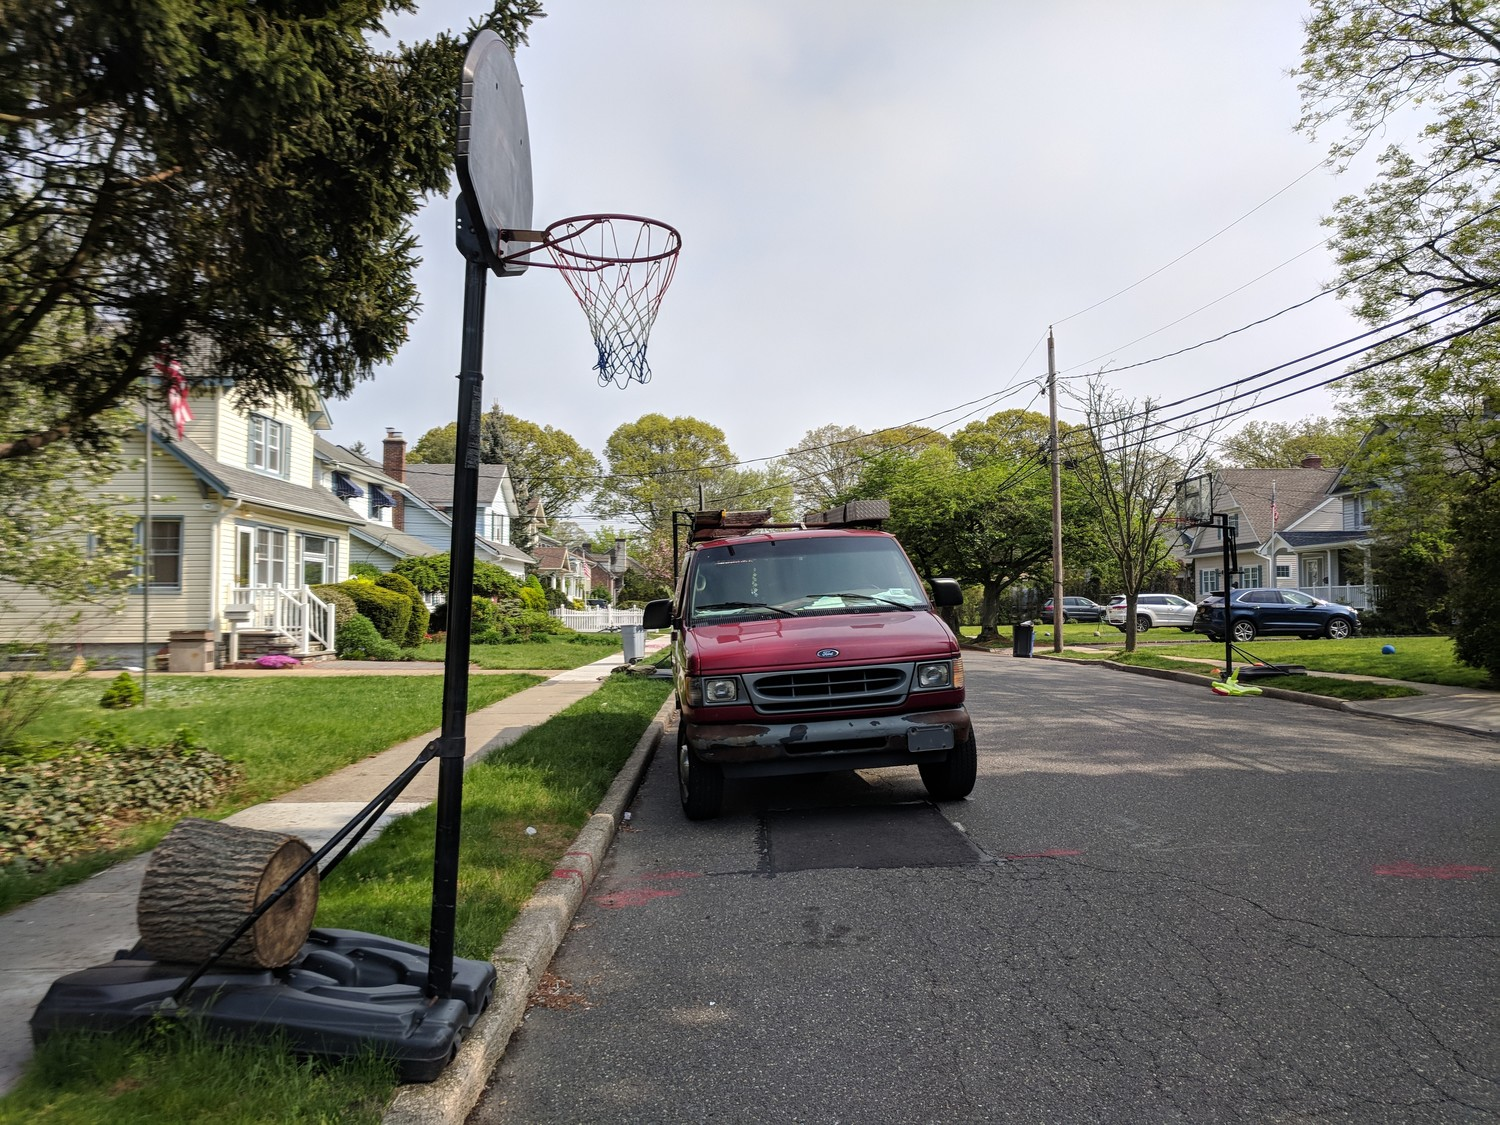 Rockville Centre residents can now legally put up their basketball hoops and play in the street.